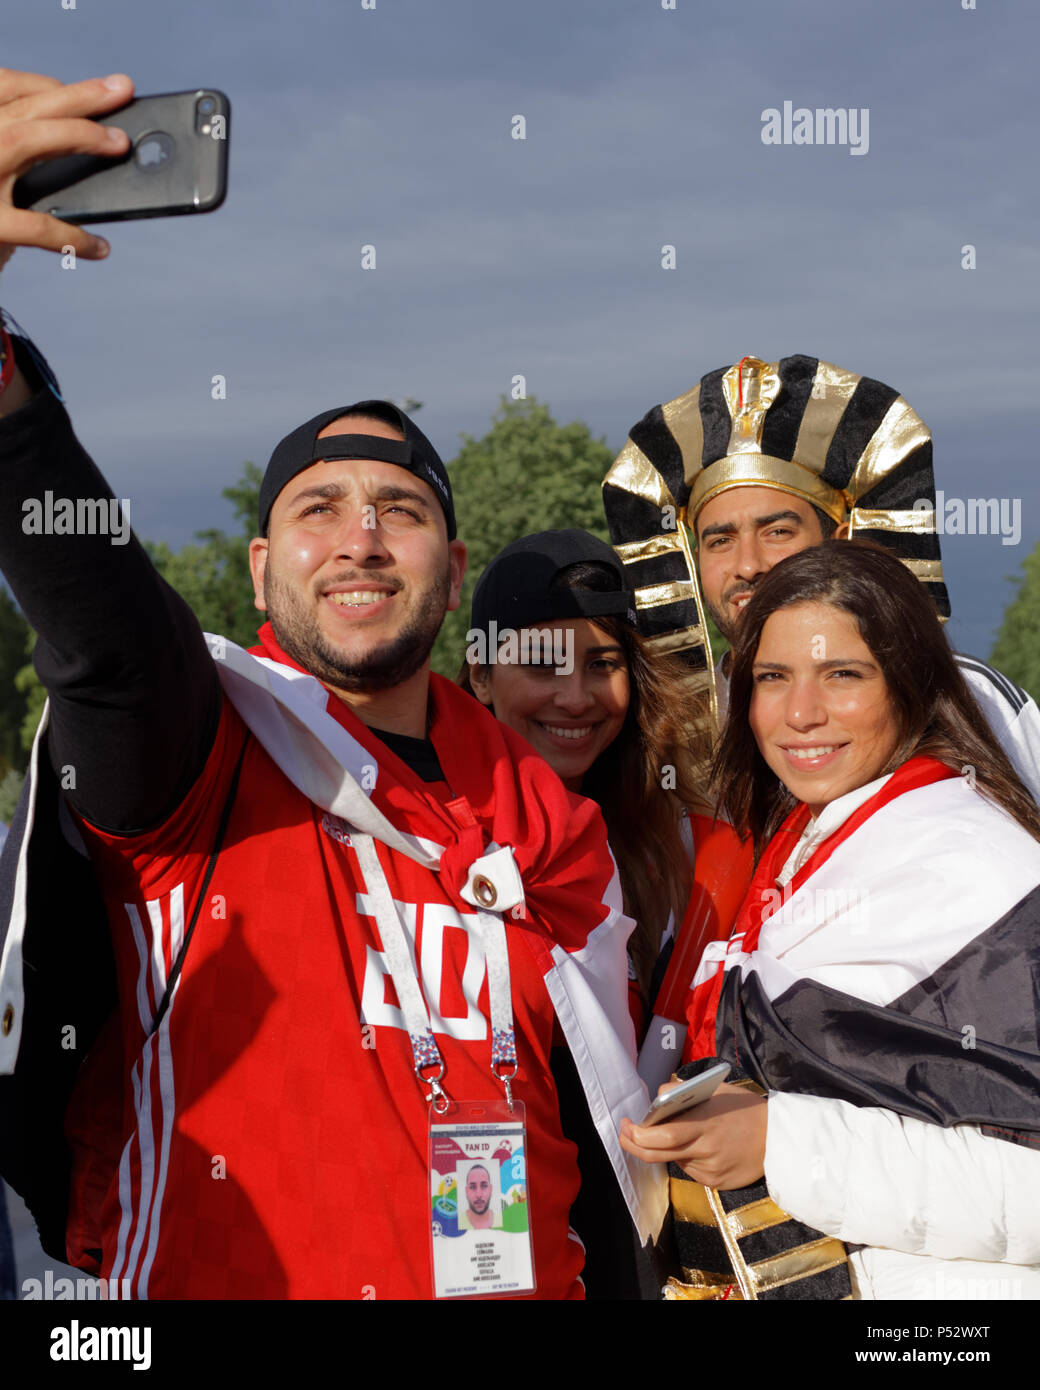 St. Petersburg, Russia - June 19, 2018: Egyptian football fans make photo at Saint Petersburg Stadium before the FIFA World Cup 2018 match Russia vs E - Stock Image